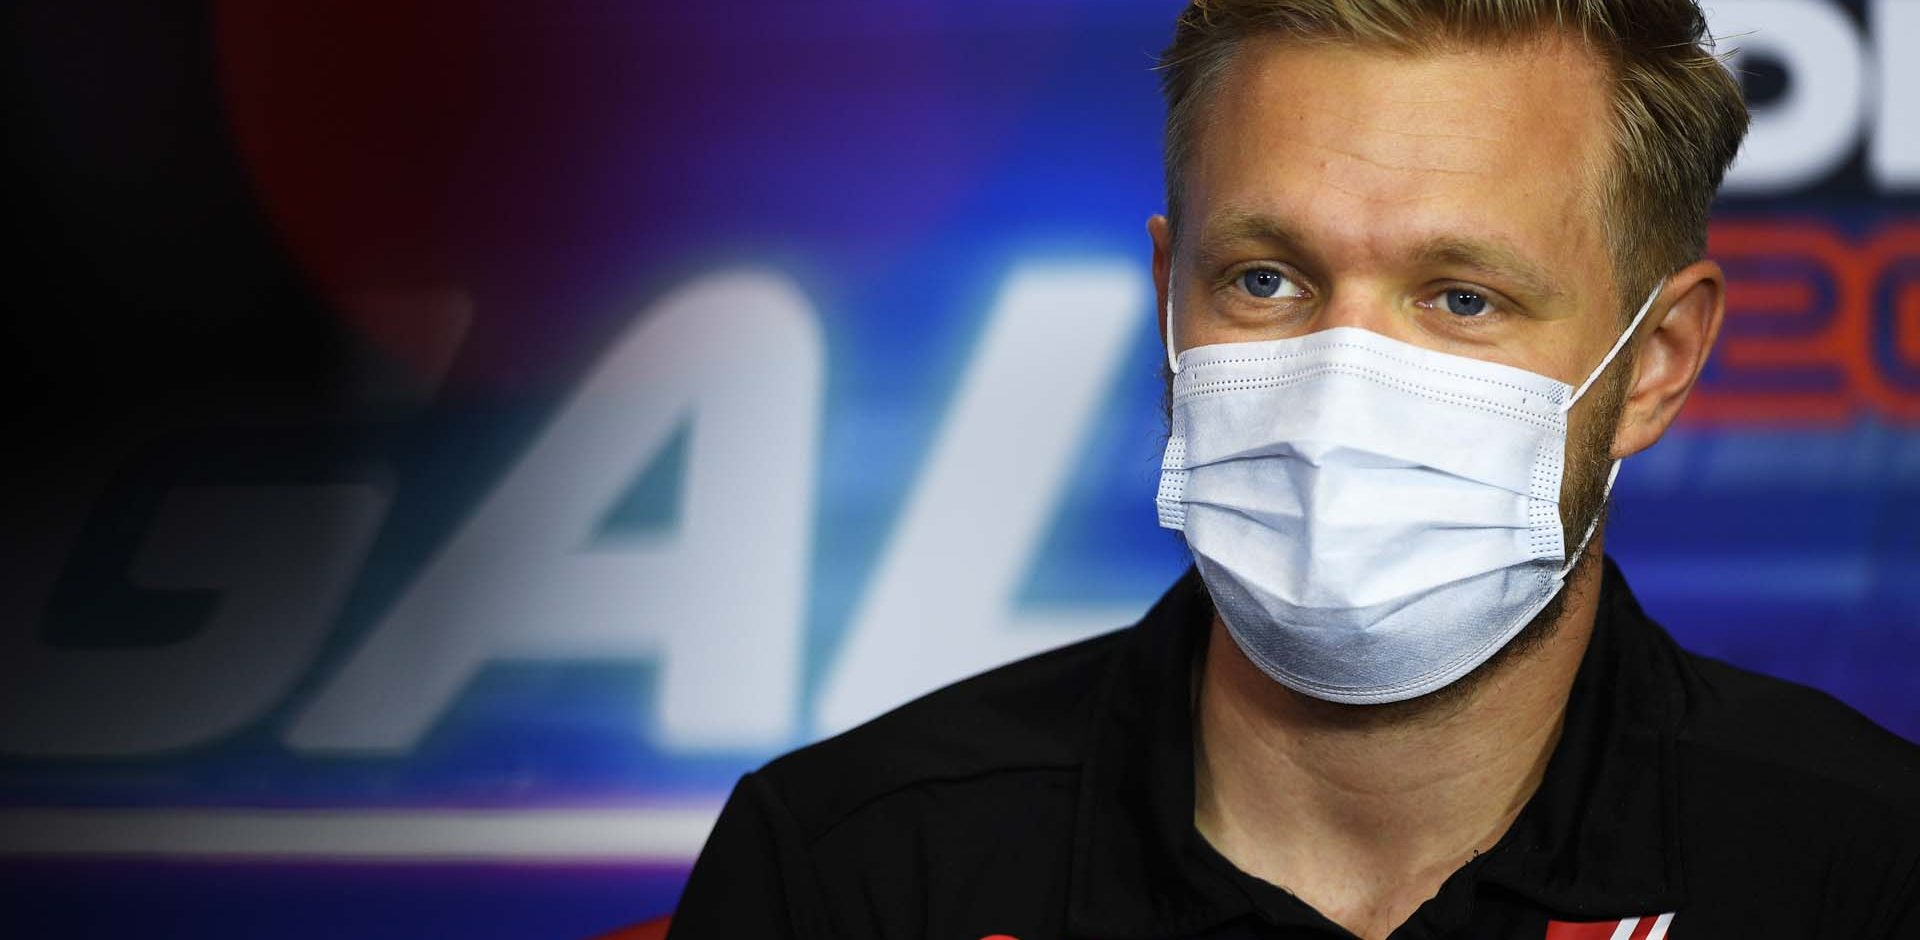 ALGARVE INTERNATIONAL CIRCUIT, PORTUGAL - OCTOBER 22: Kevin Magnussen, Haas F1, in the press conference during the Portuguese GP at Algarve International Circuit on Thursday October 22, 2020, Portugal. (Copyright Free for Editorial Use Only. Credit: FIA Pool / LAT Images)